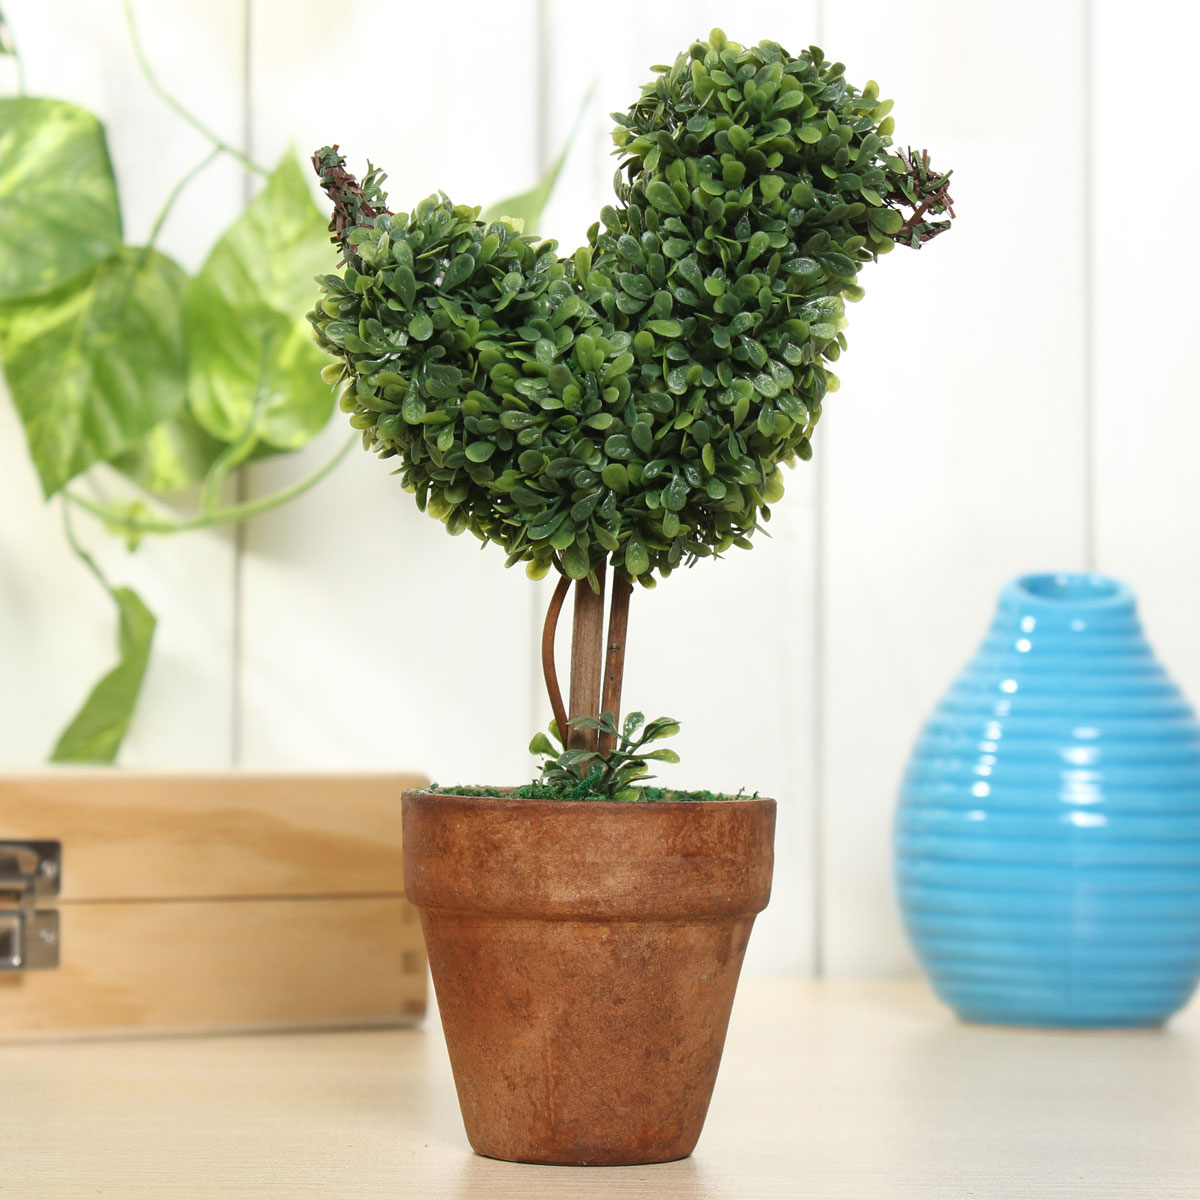 Artificial potted plant plastic garden grass ball topiary for Decorating patio with potted plants